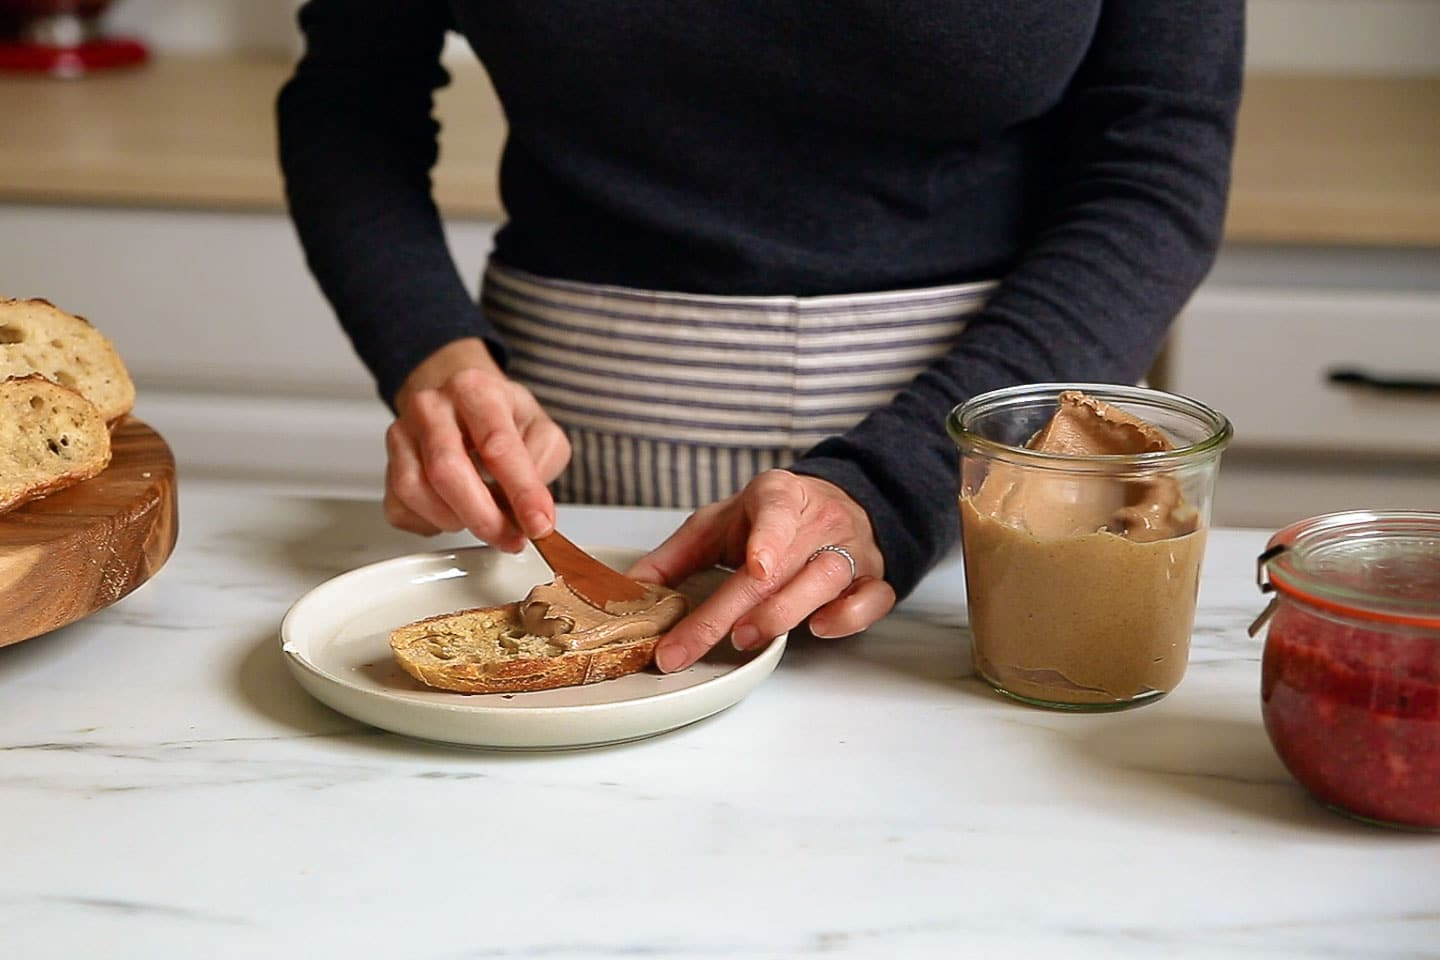 Homemade Almond Butter is easy to make with only 1 ingredient! #almondbutter #vitamixalmondbutter